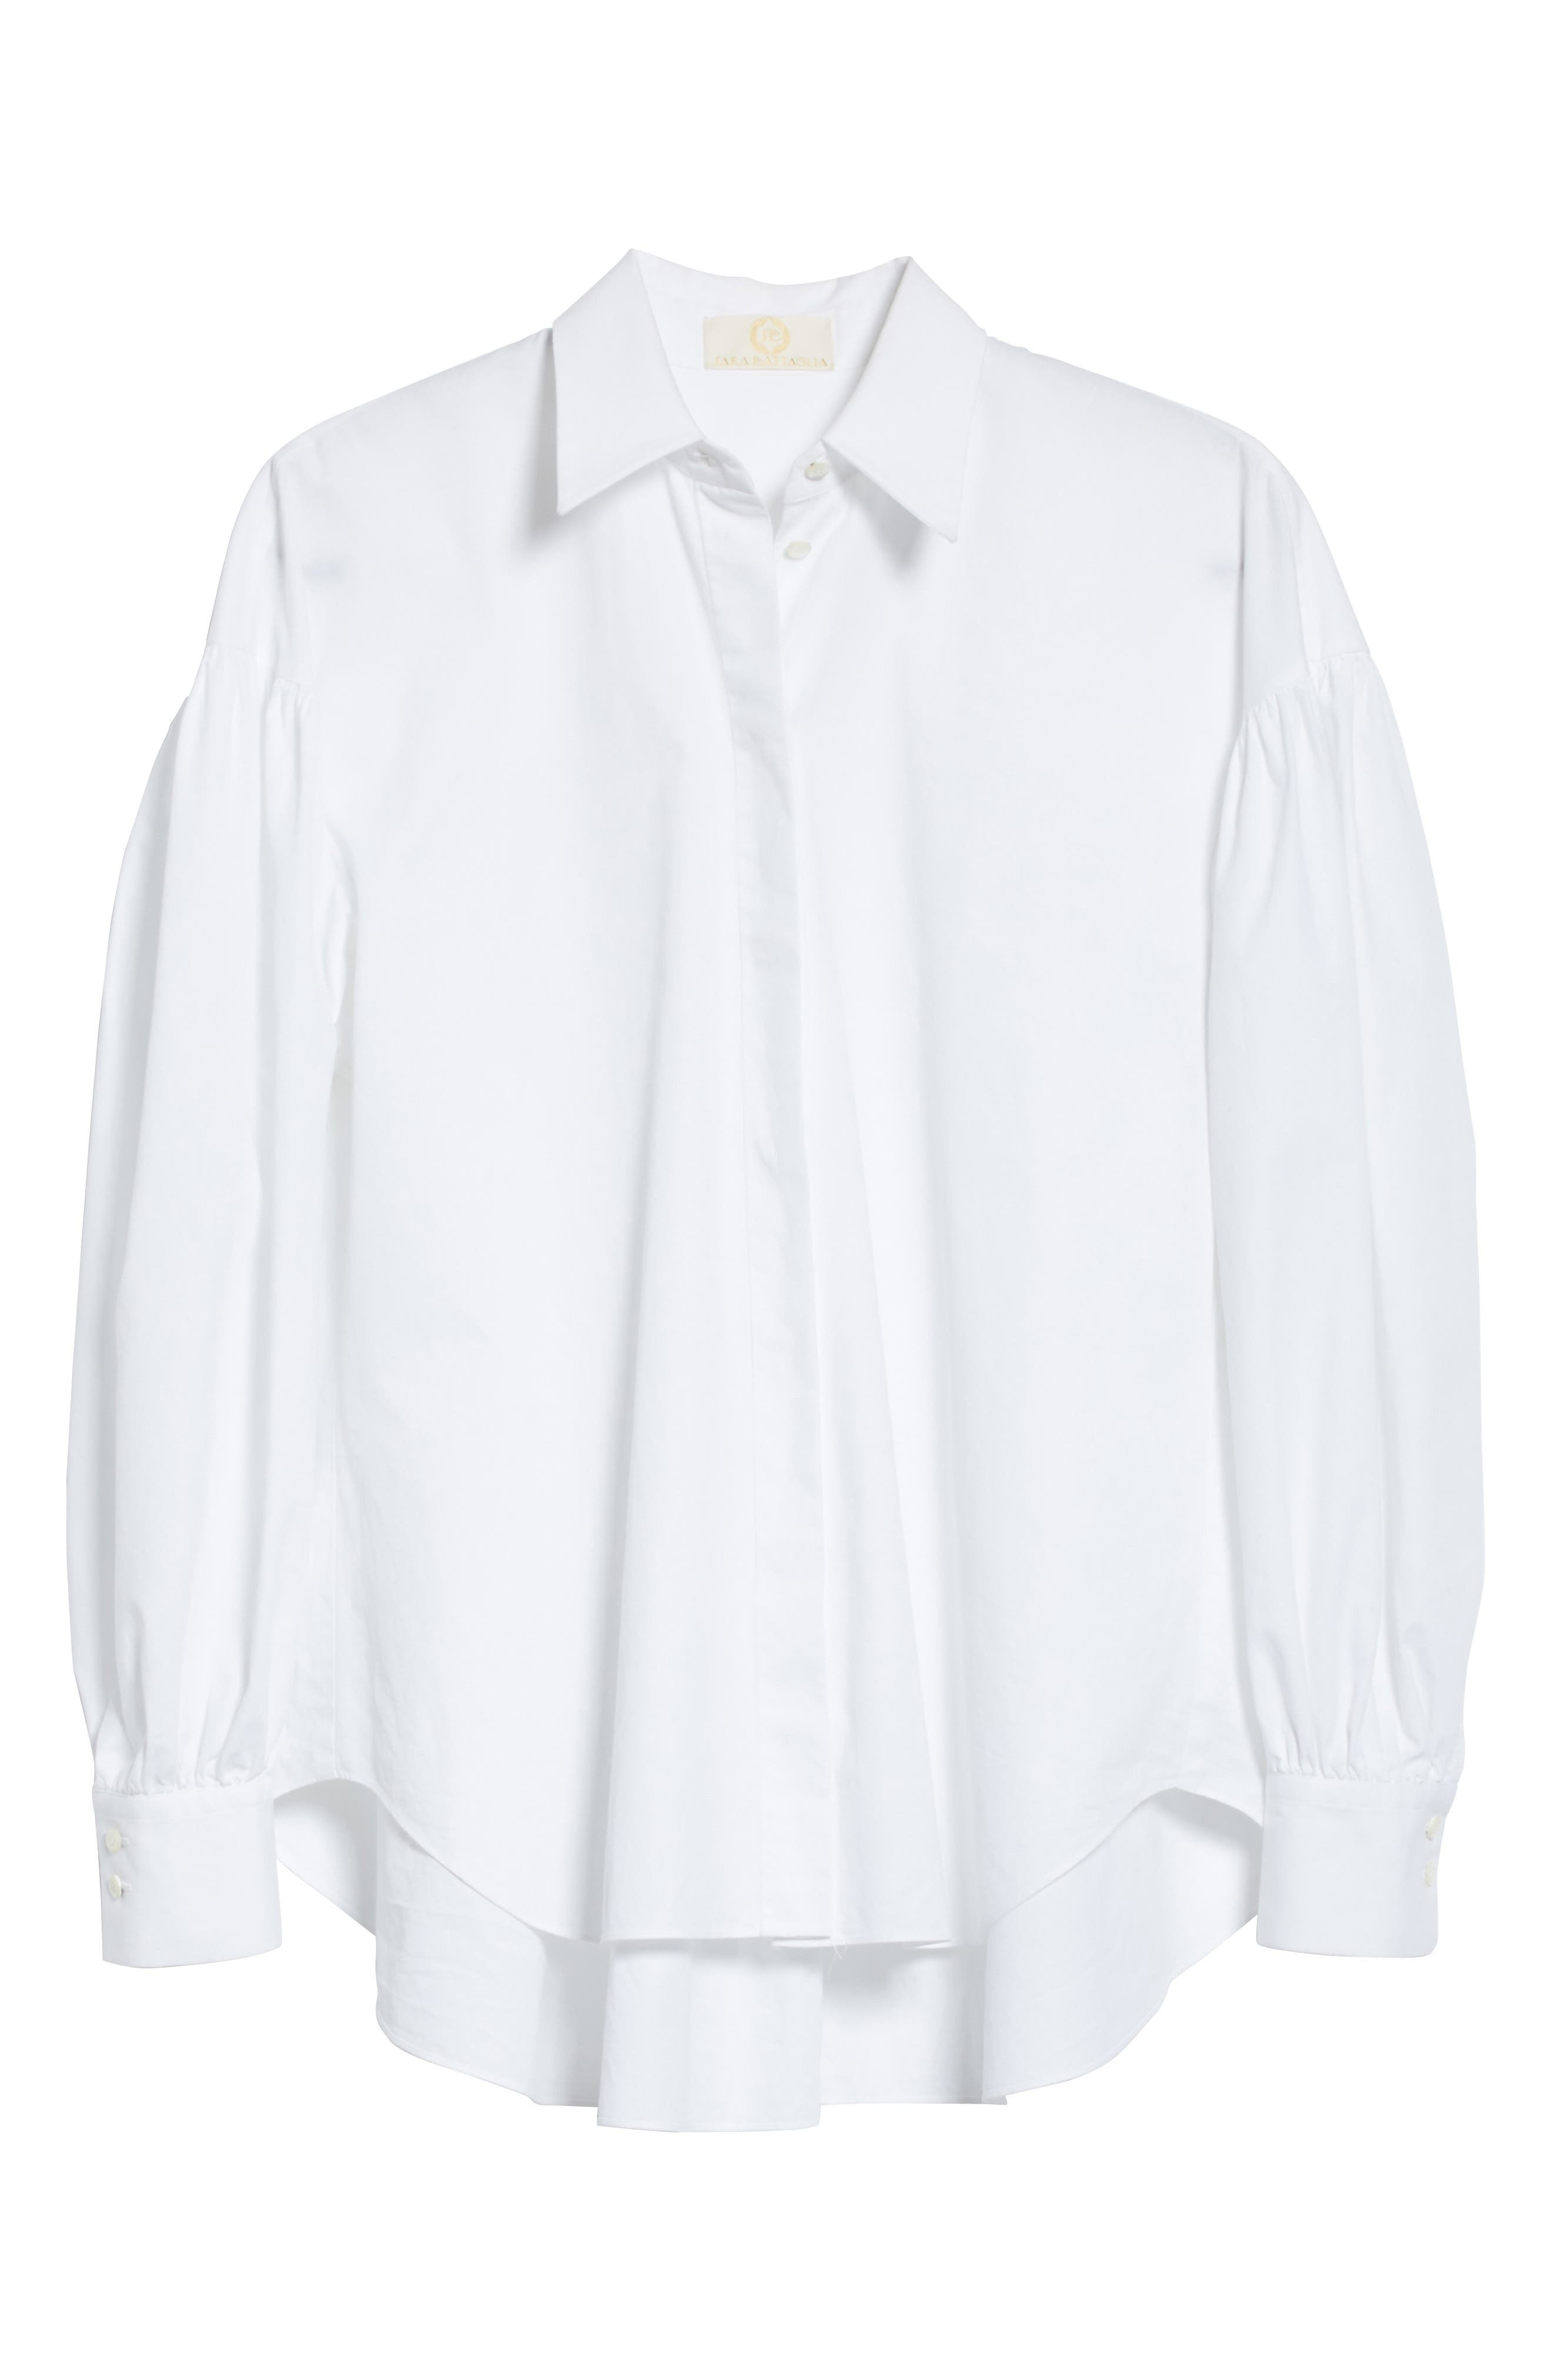 Puff Sleeve Shirt,                             Alternate thumbnail 7, color,                             White